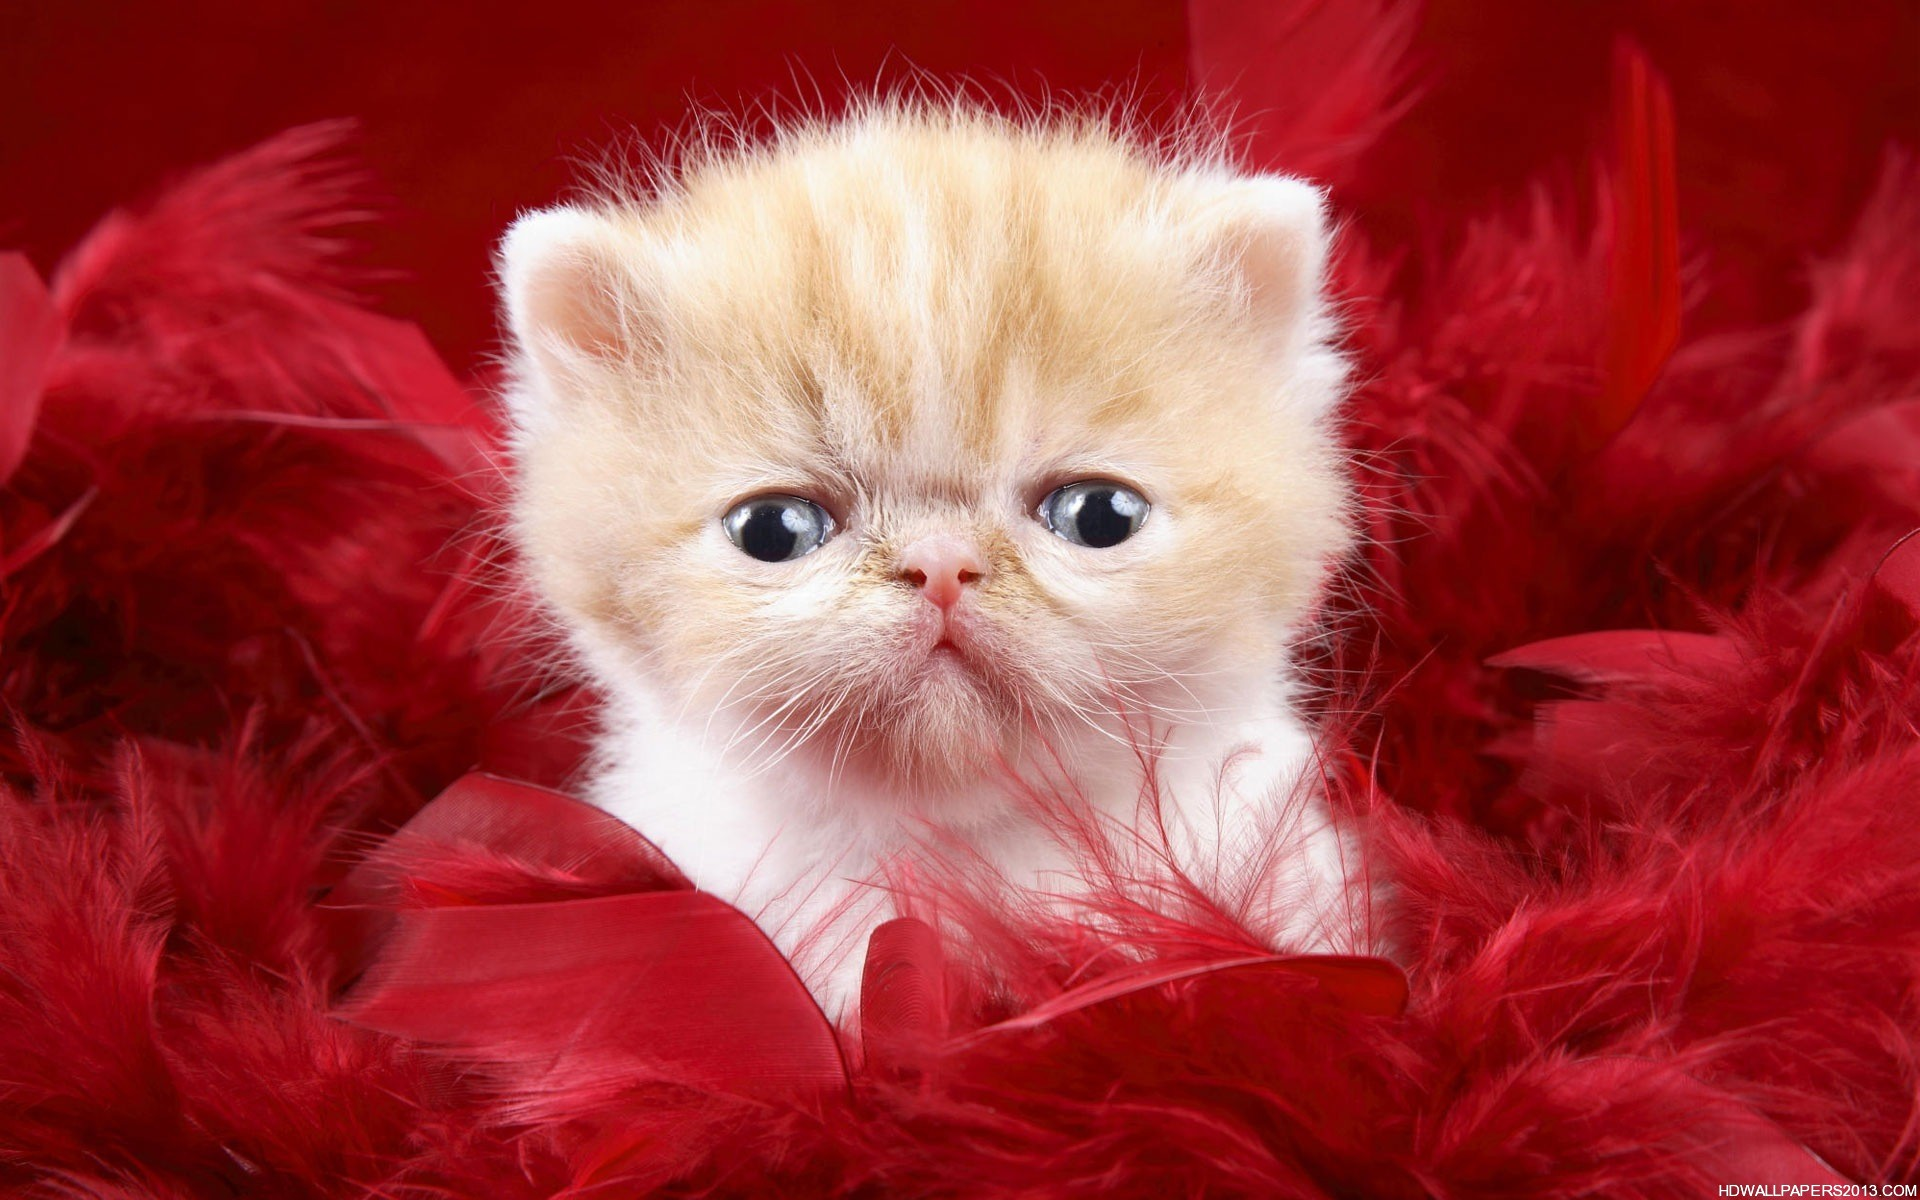 Cute Cat Wallpapers High Definition Wallpapers High Definition